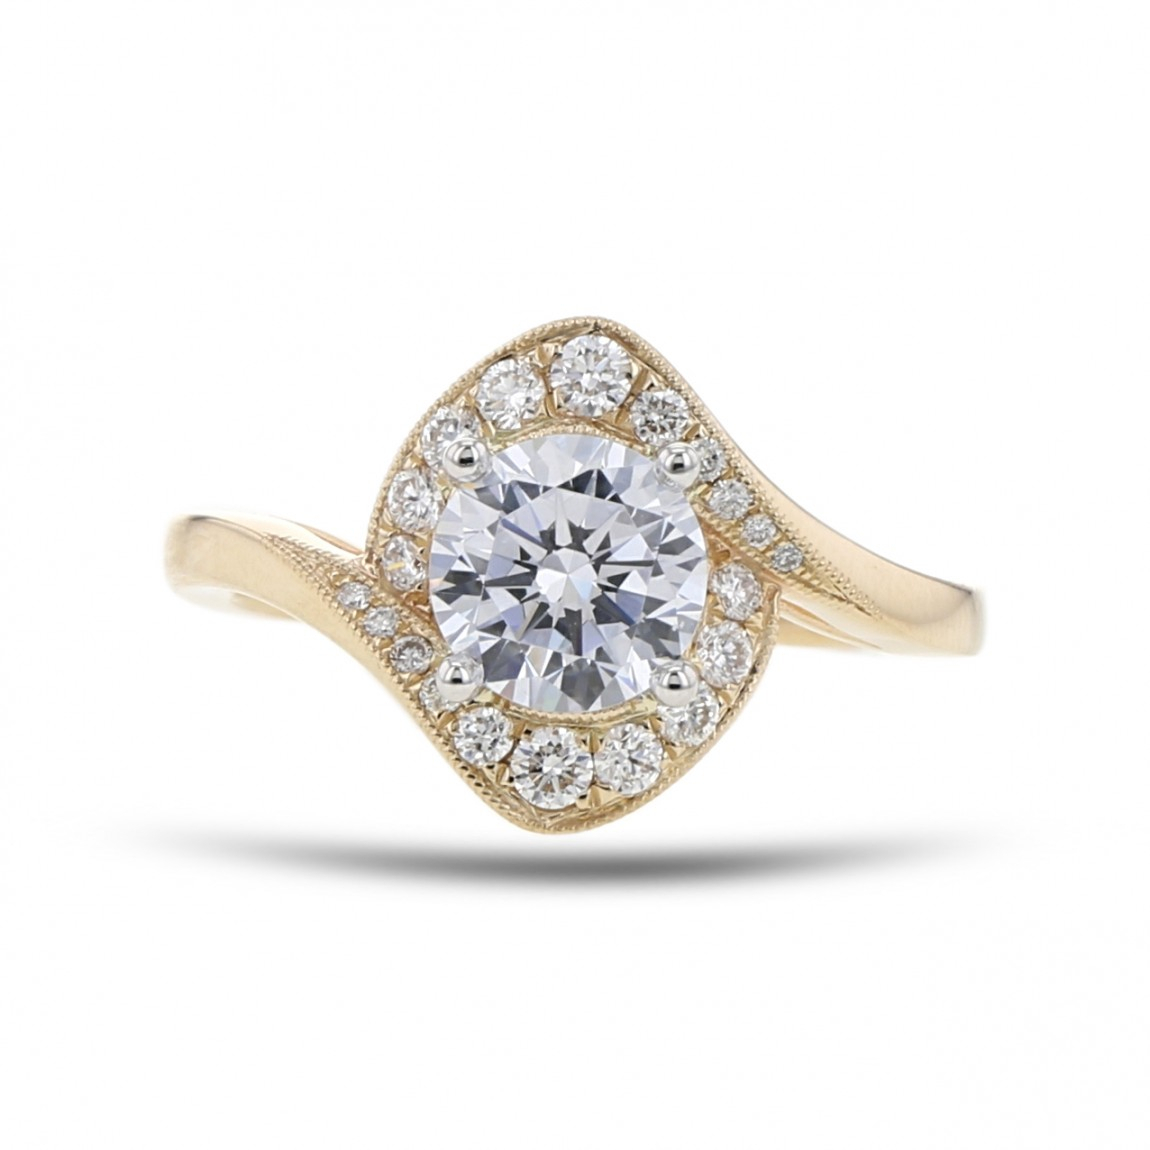 Diamond Halo Engagement Ring Setting, Bypass Milgrain, 14K Yellow Gold,  .25Tdw Within 2020 Diamond Accent Vintage Style Anniversary Bands In White Gold (Gallery 20 of 25)